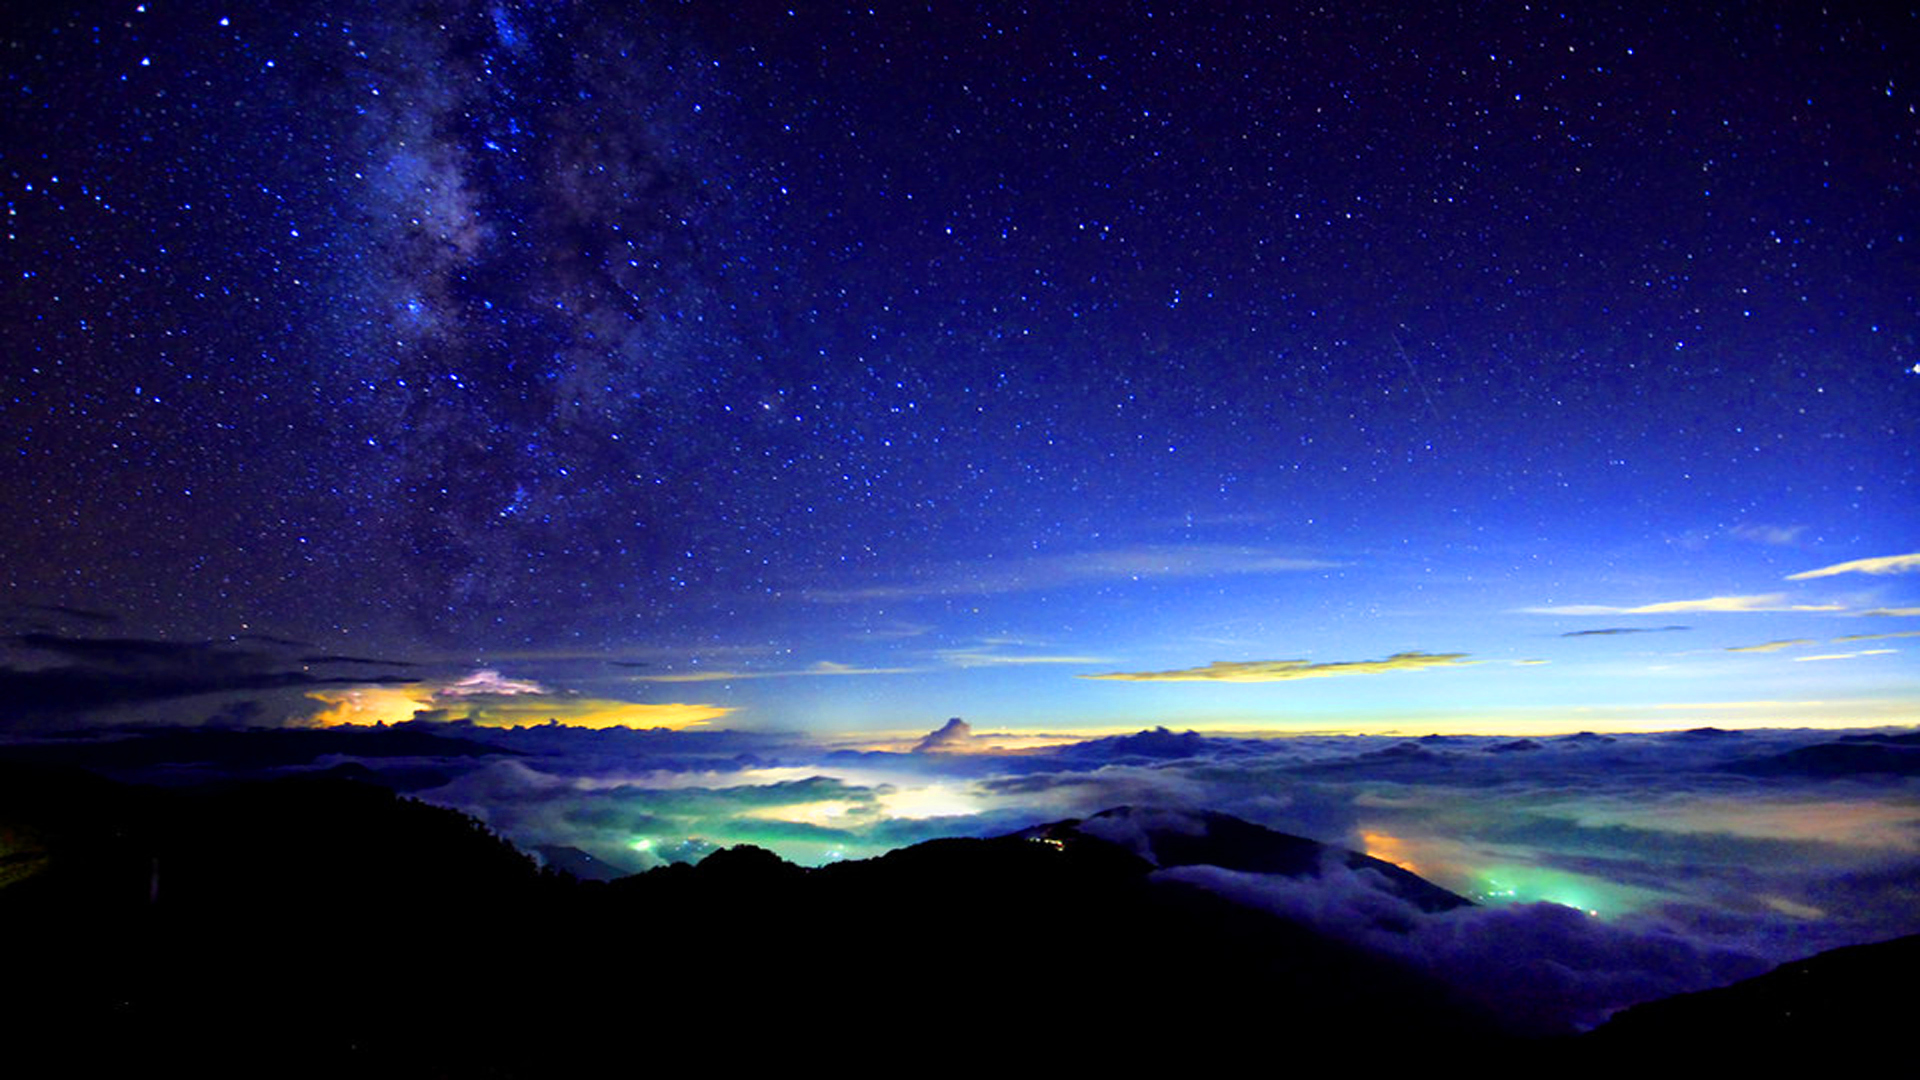 Autumn-Milky-way-in-a-Sea-of-Clouds-Taroko-National-Park-Taiwan-1920x1080-Need-iPhone-S-Plus-wallpaper-wp3402710